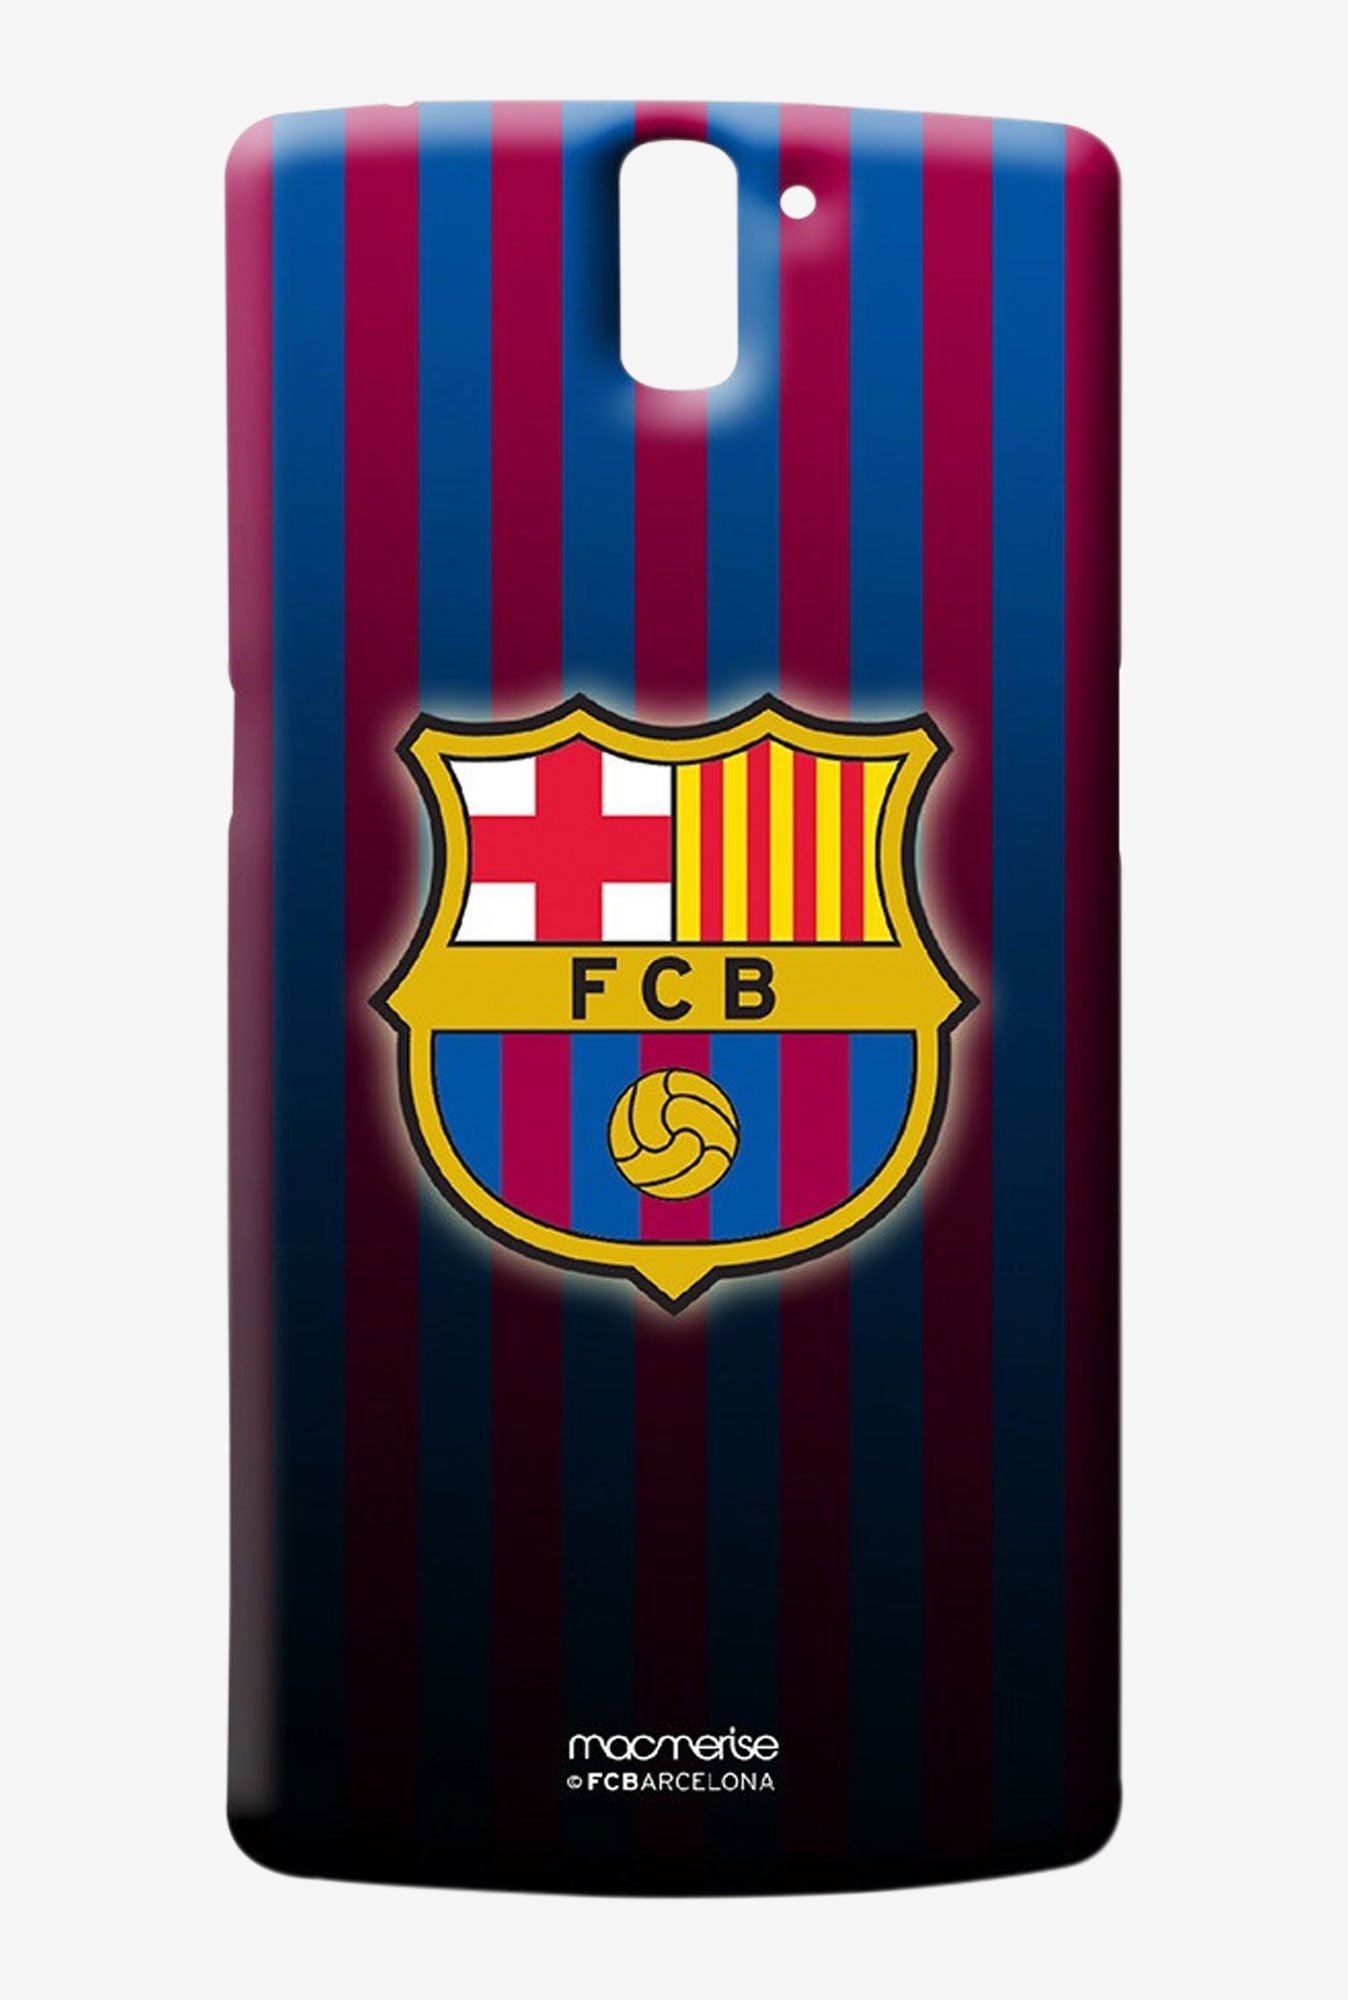 Macmerise FCB Crest Sublime Case for Oneplus One